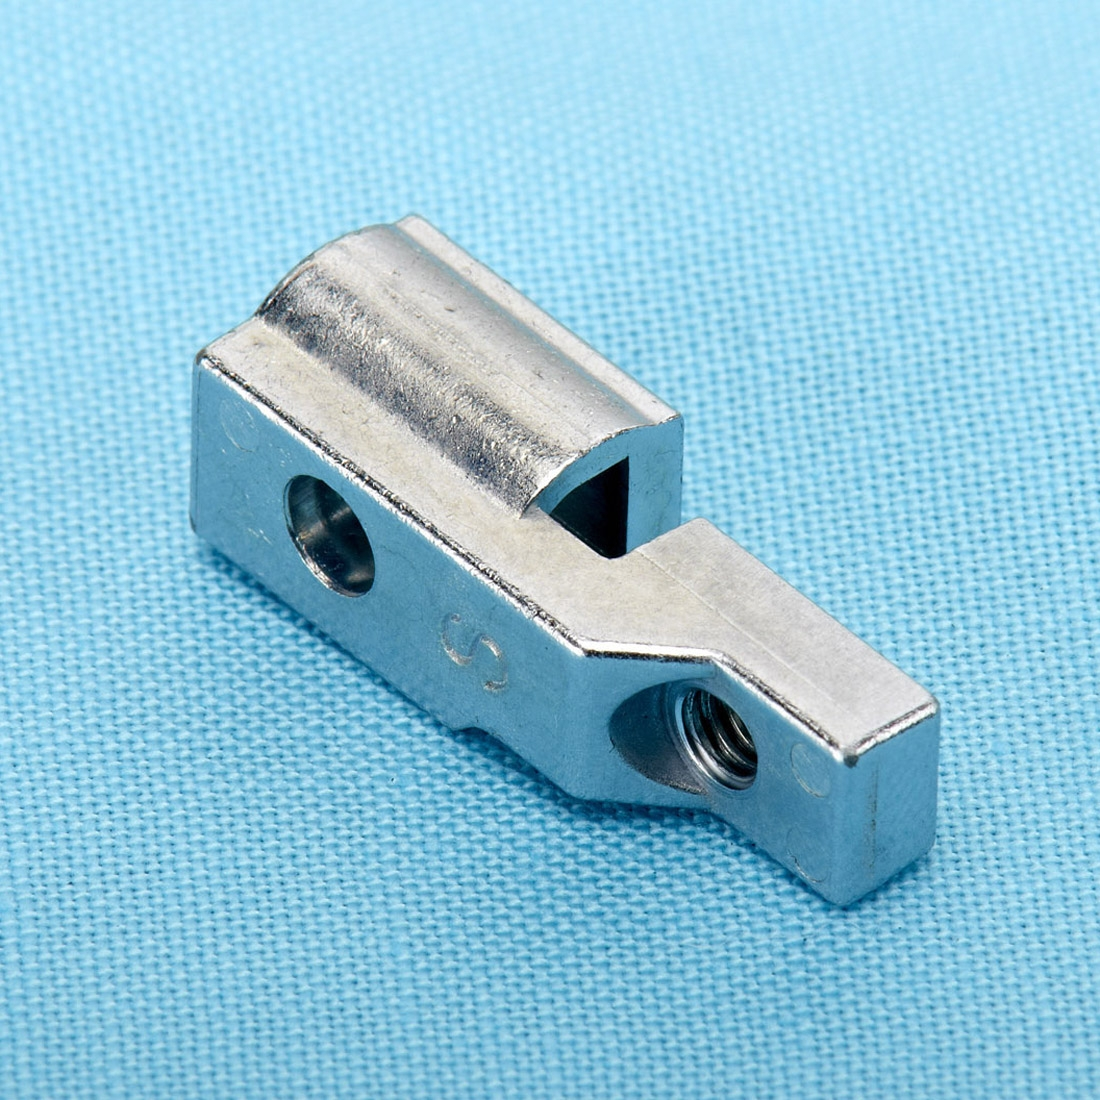 Baby Lock Adaptor for Low Shank Attachments